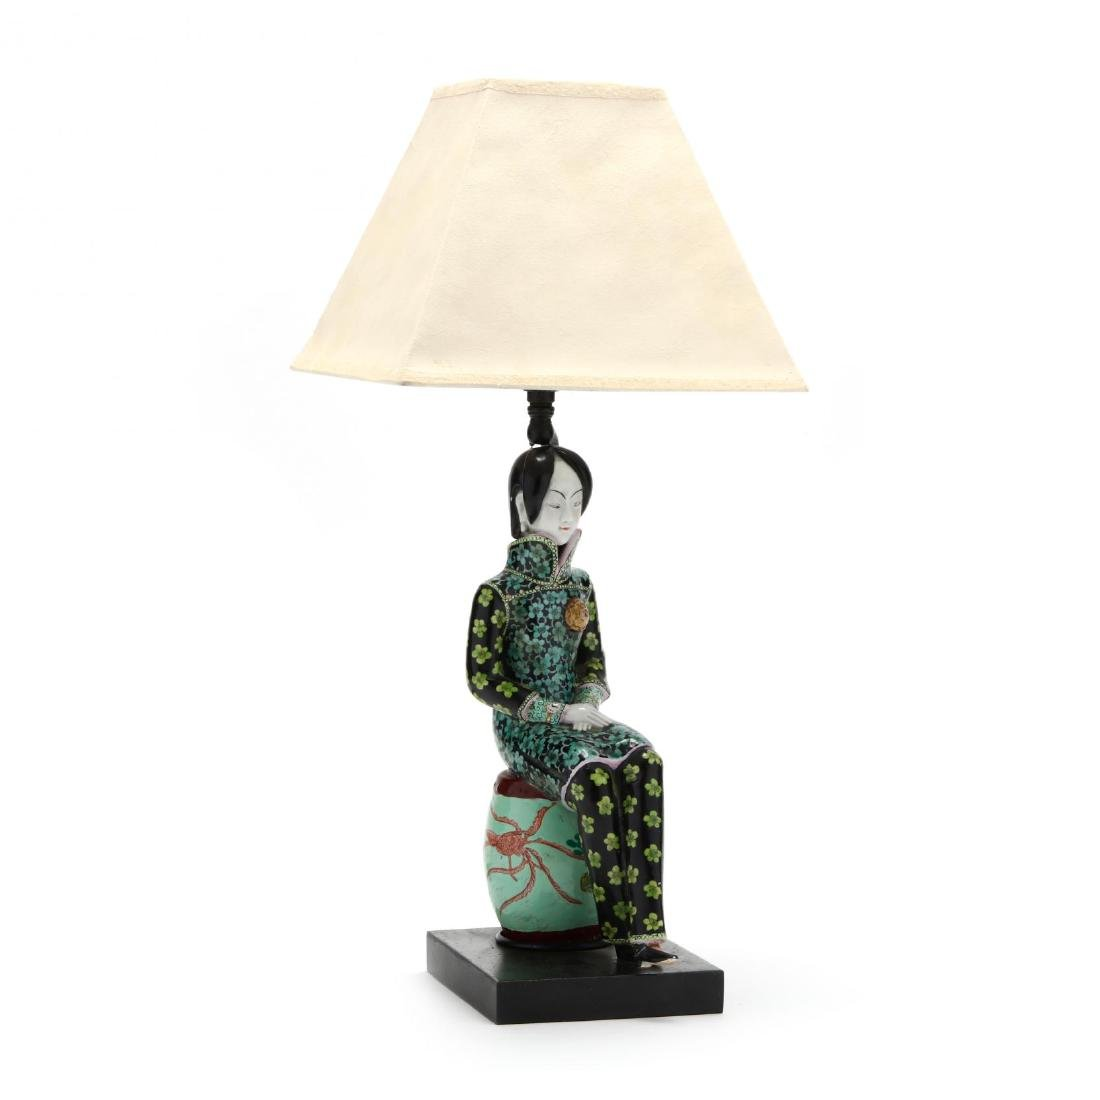 A Chinese Figurine Lamp